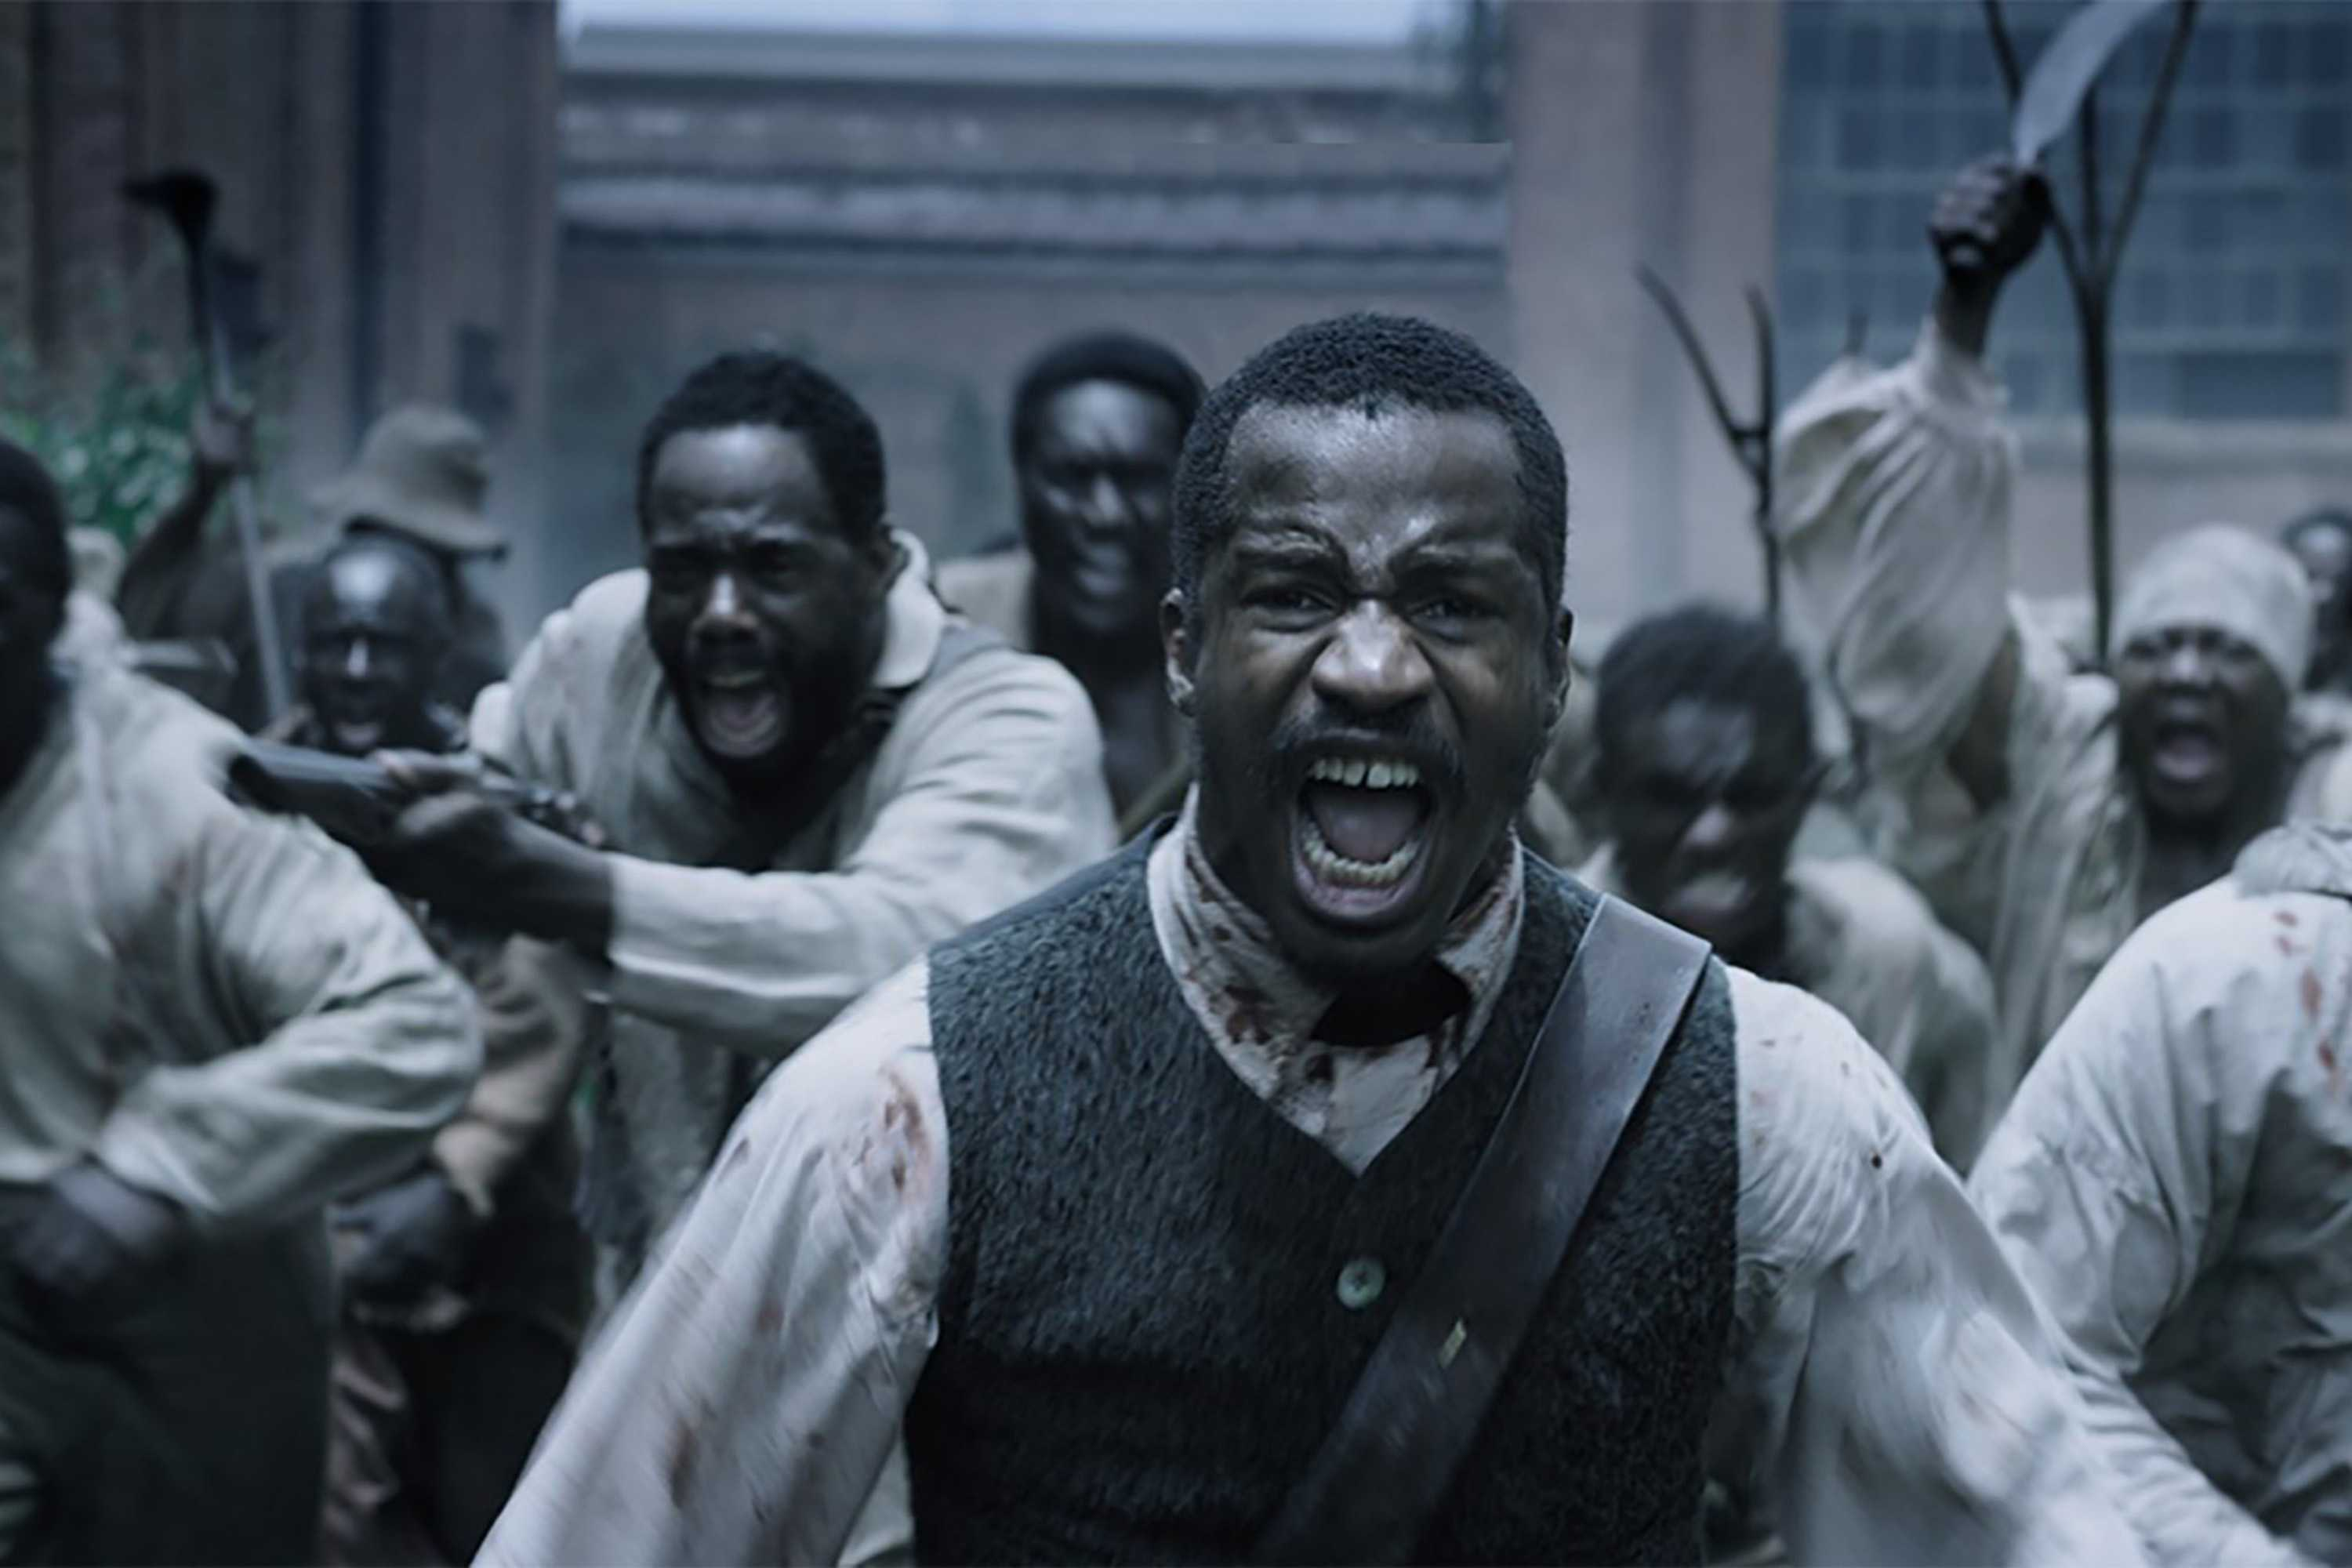 Nat Turner, played by Nate Parker, is a slave who must decide if he wants to stand up for what he believes in.